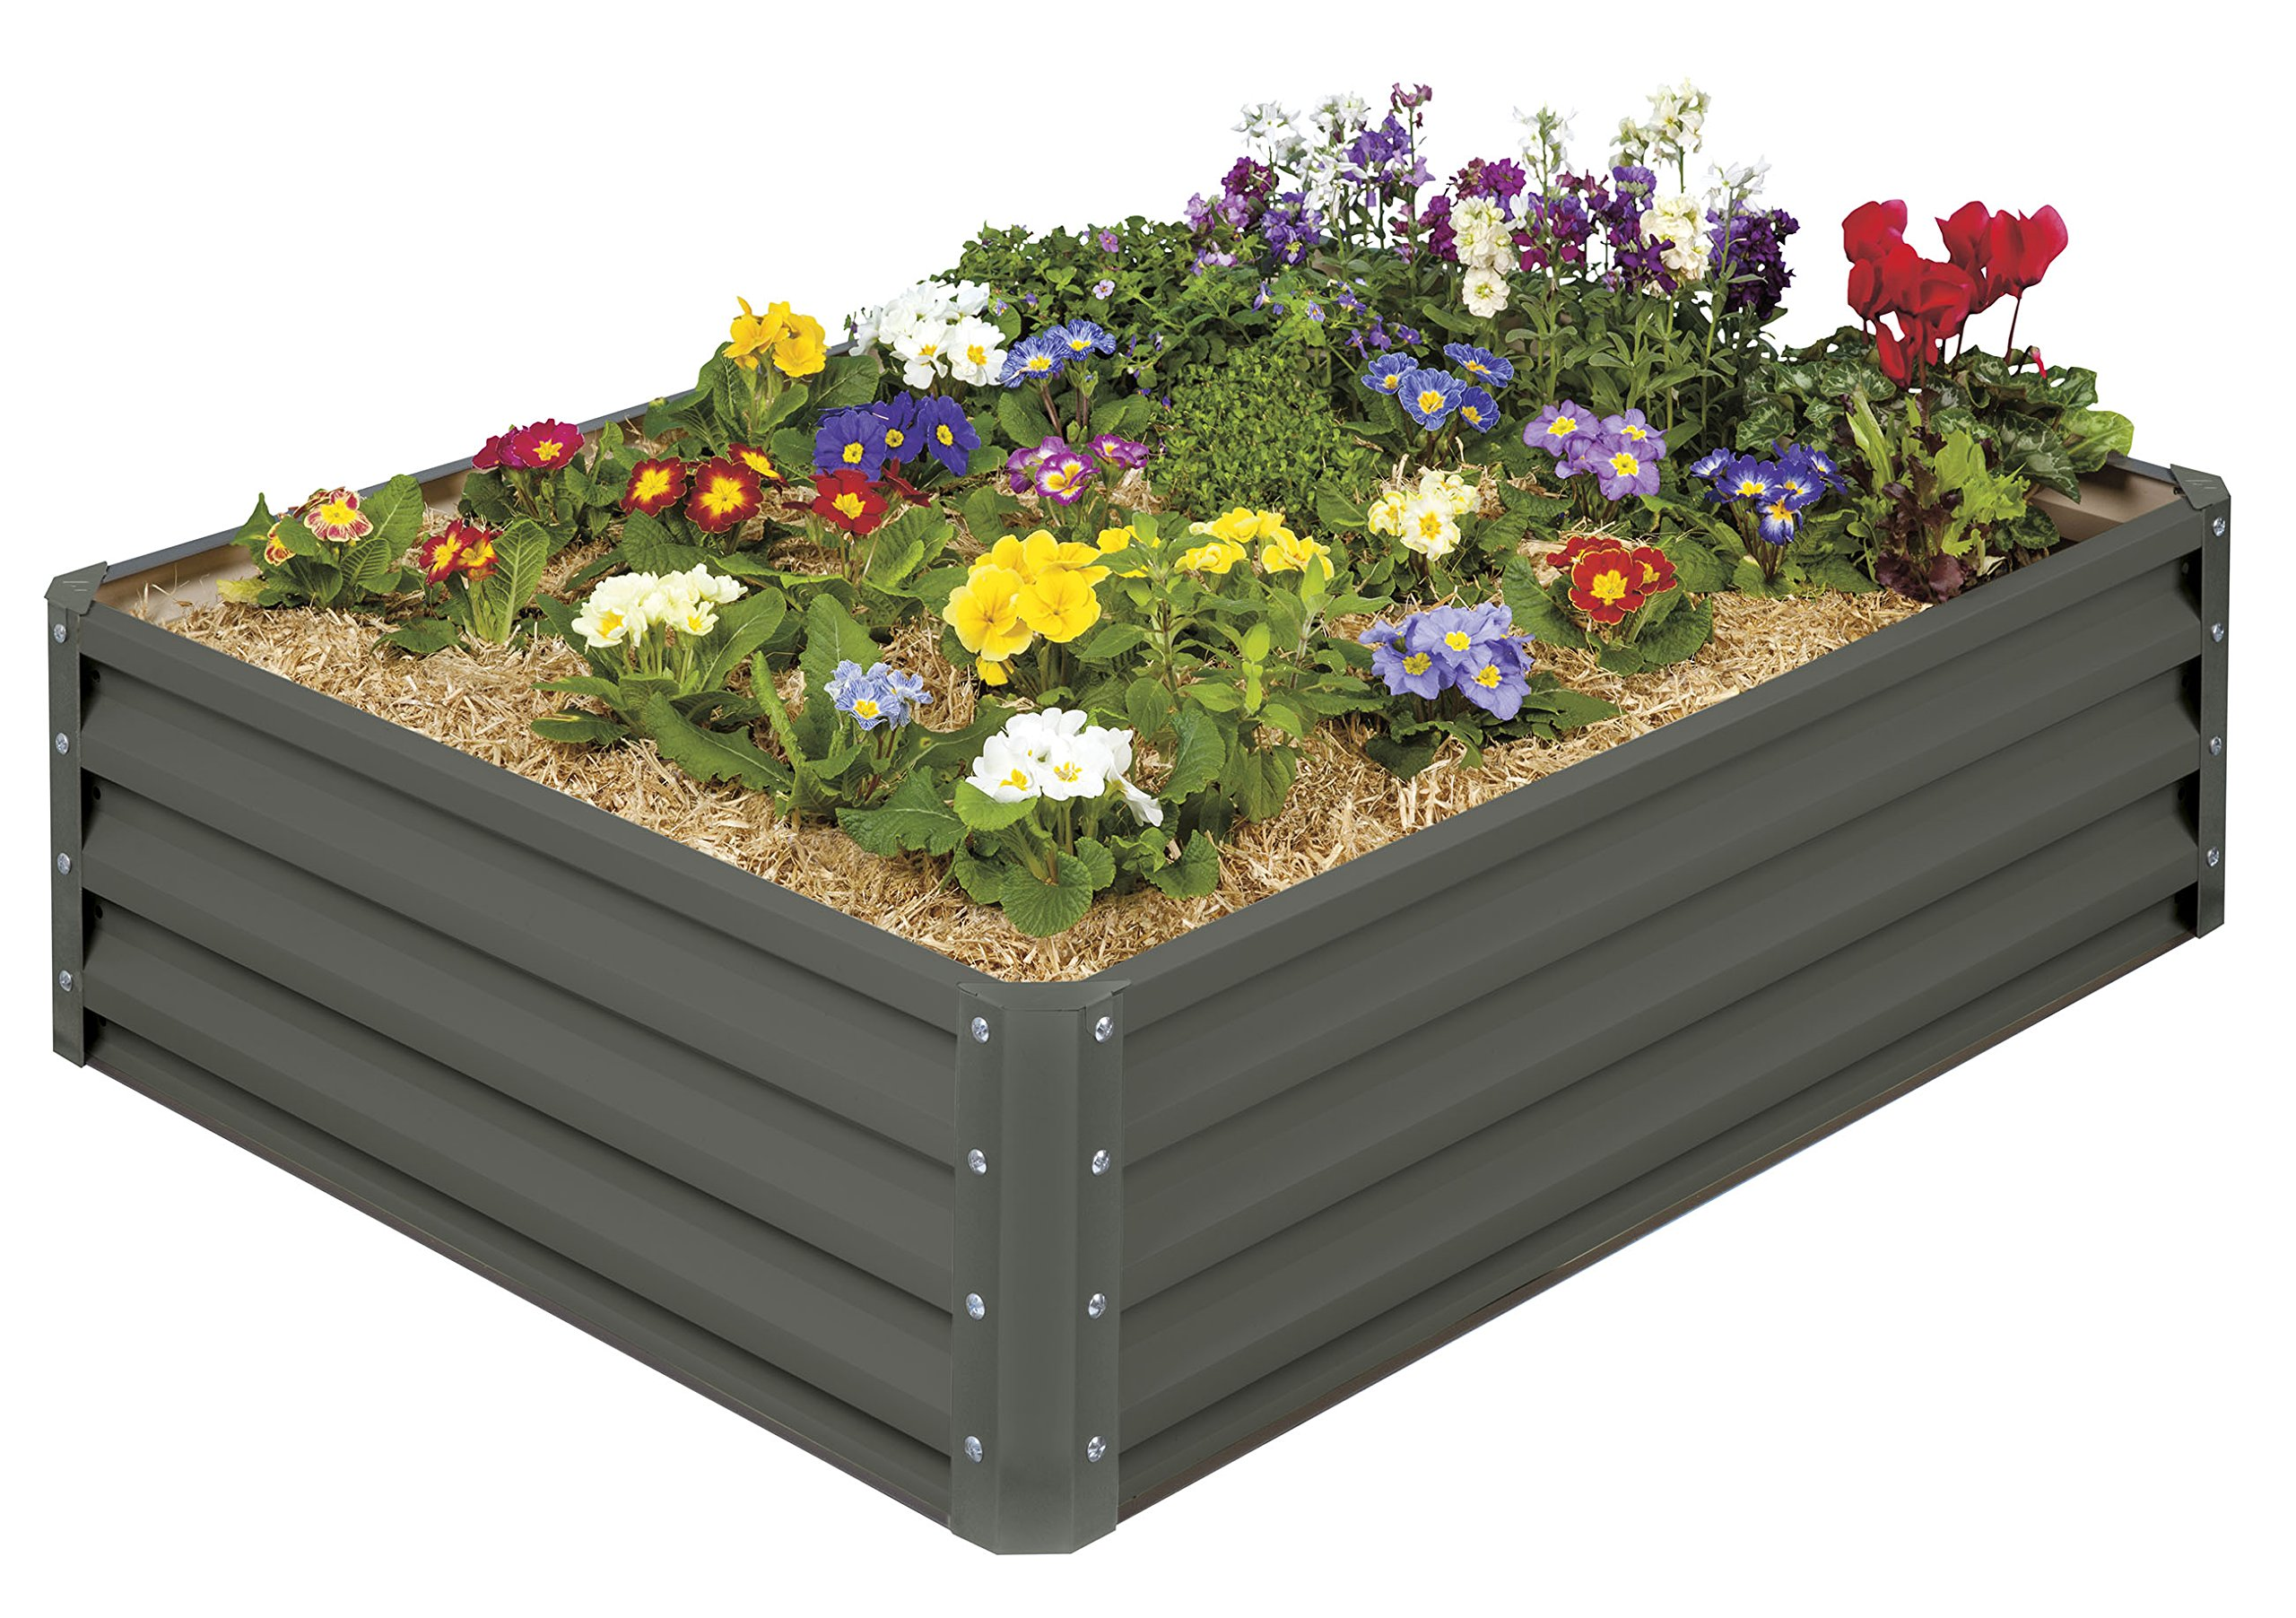 High-Grade Metal Raised Garden Bed Kit (3 ft. x 4 ft. x 1 ft.) - Elevated Planter Box For Growing Herbs, Vegetables, Greens, Strawberries, Flowers, and Much More (01) by Mr. Stacky